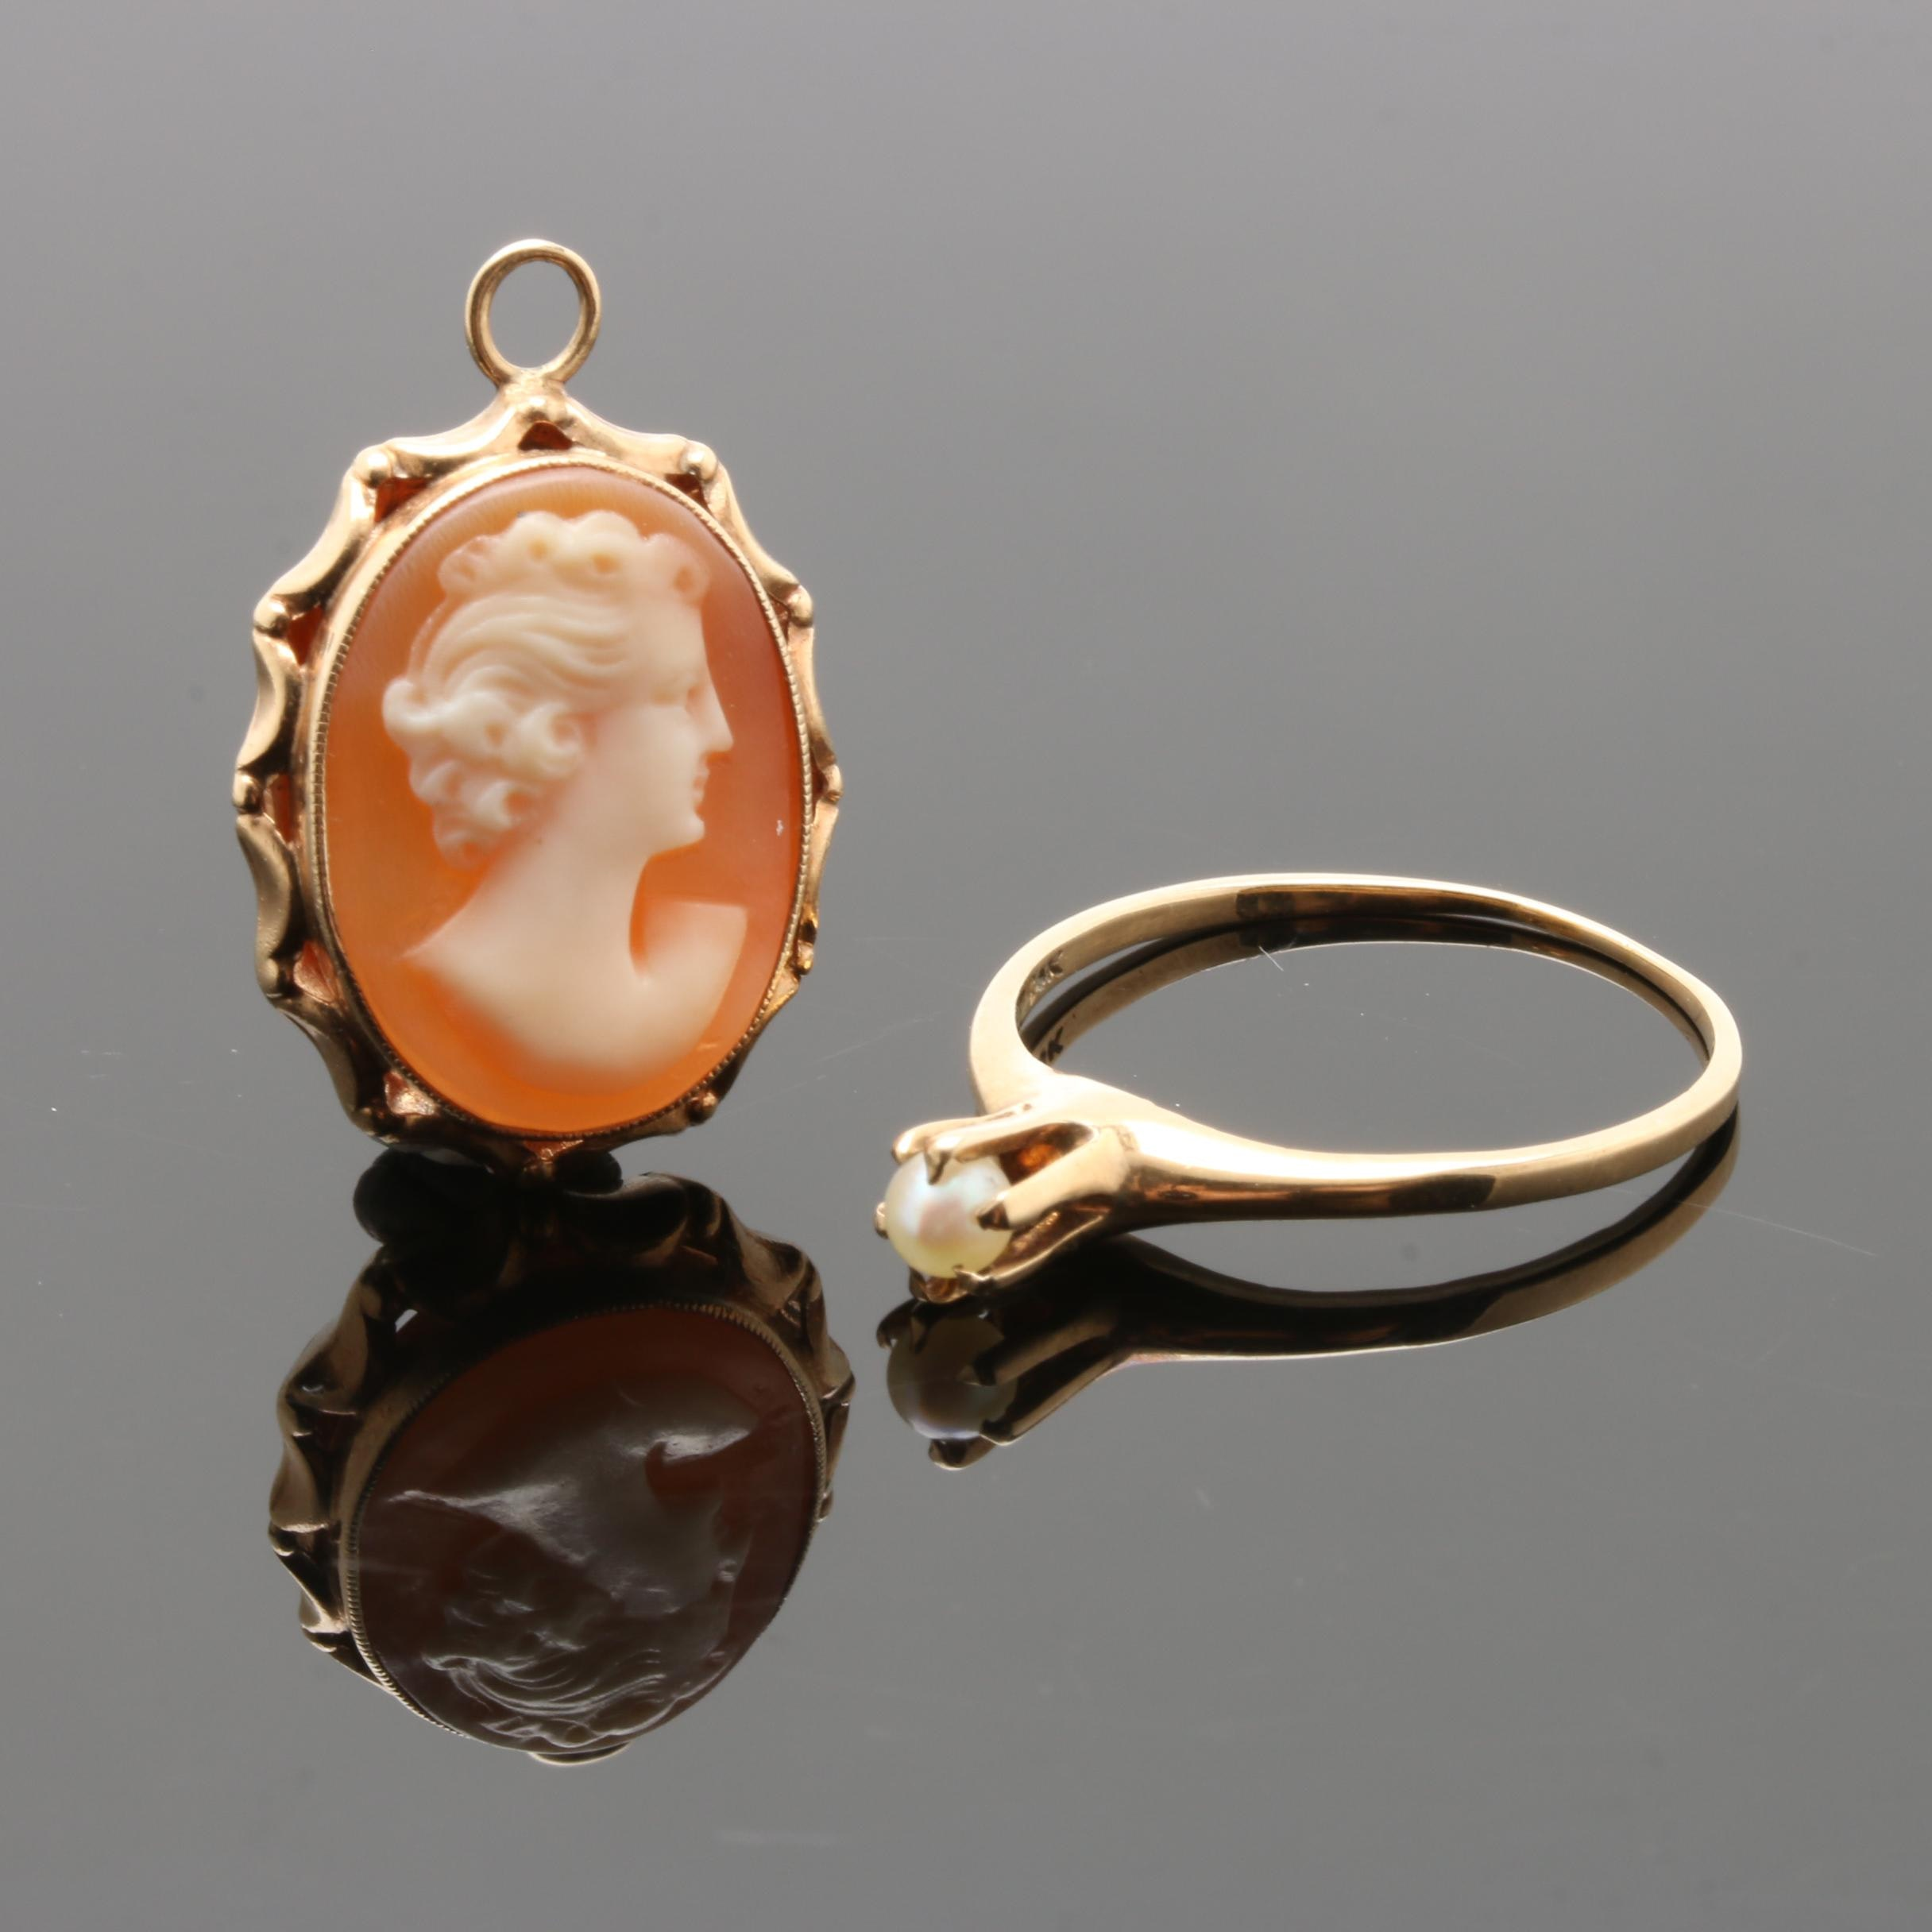 14K Yellow Gold Shell Cameo Pendant and Cultured Pearl Solitaire Ring